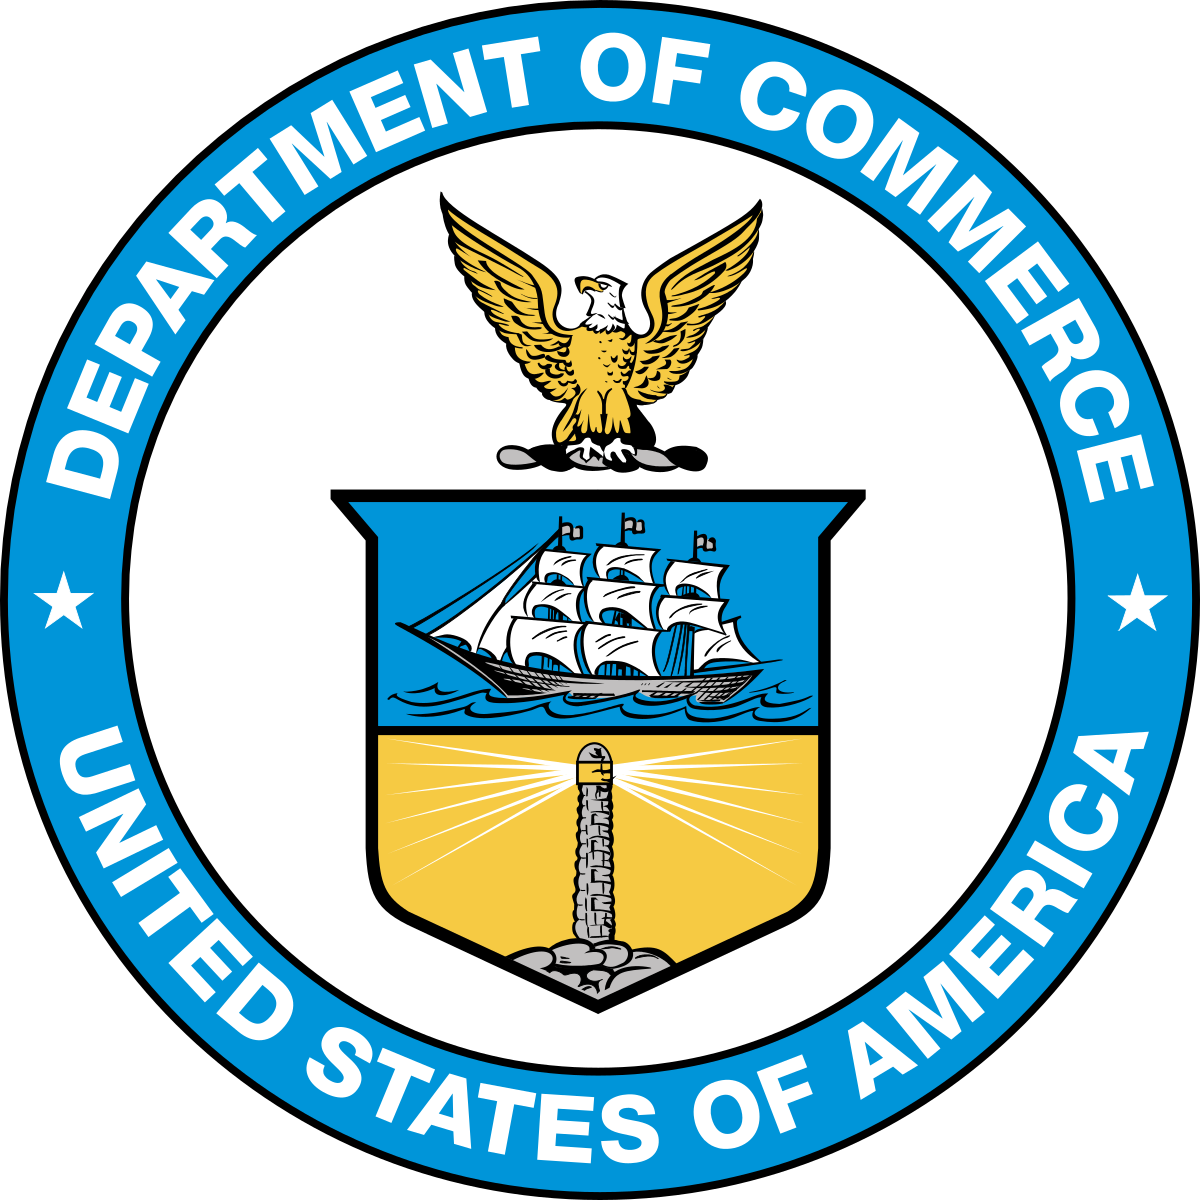 United States Deputy Secretary of Commerce.